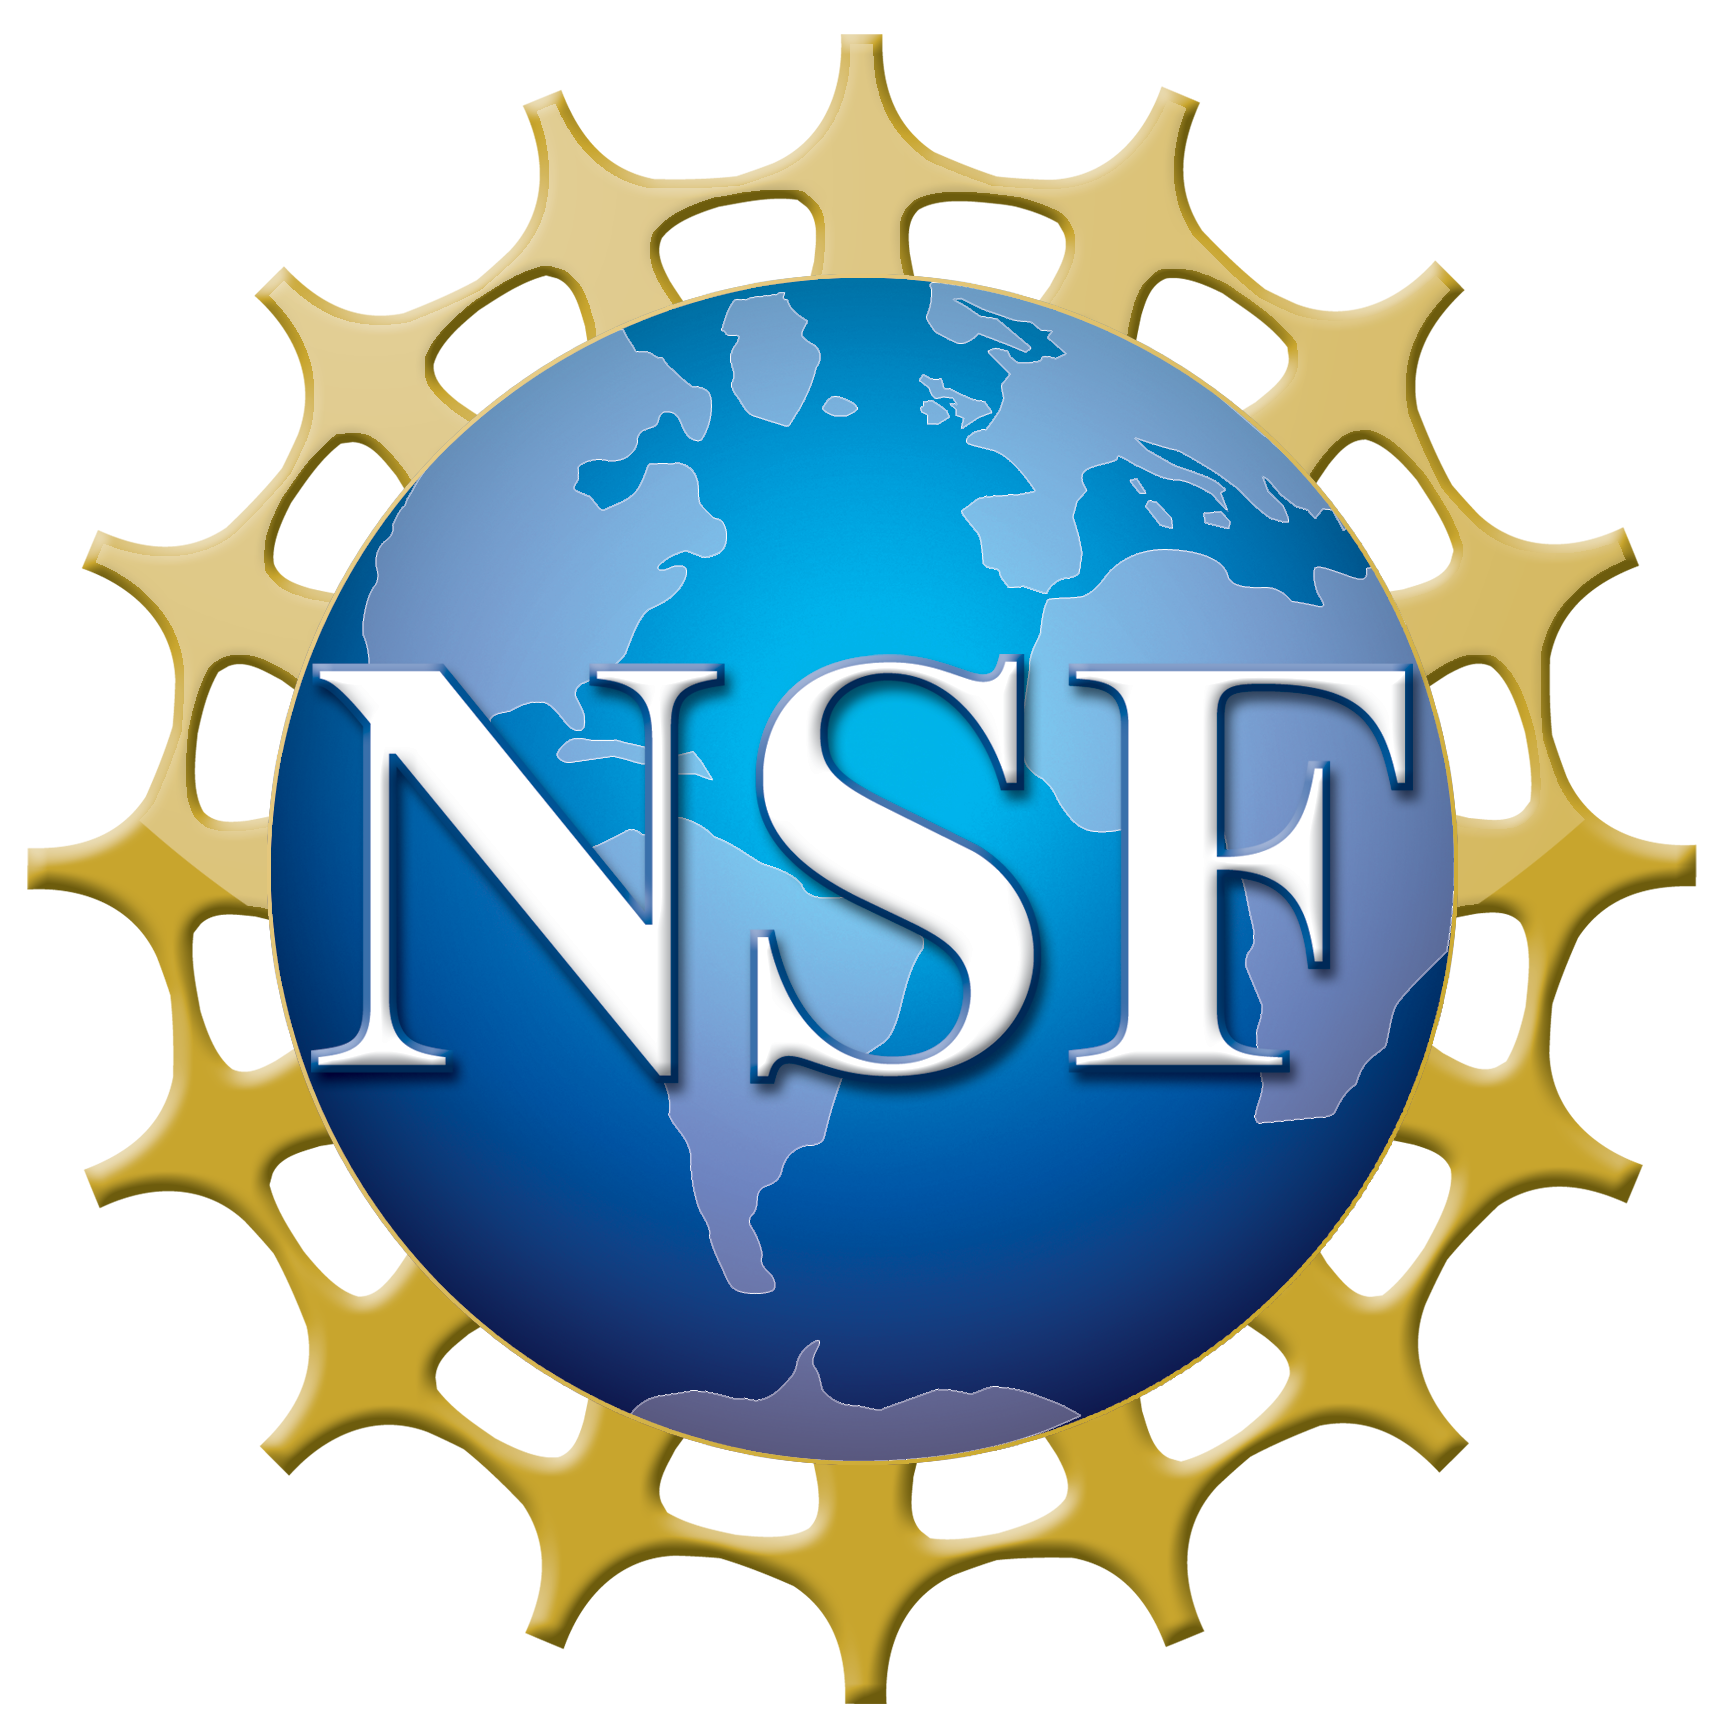 Supported by the National Science Foundation (NSF)